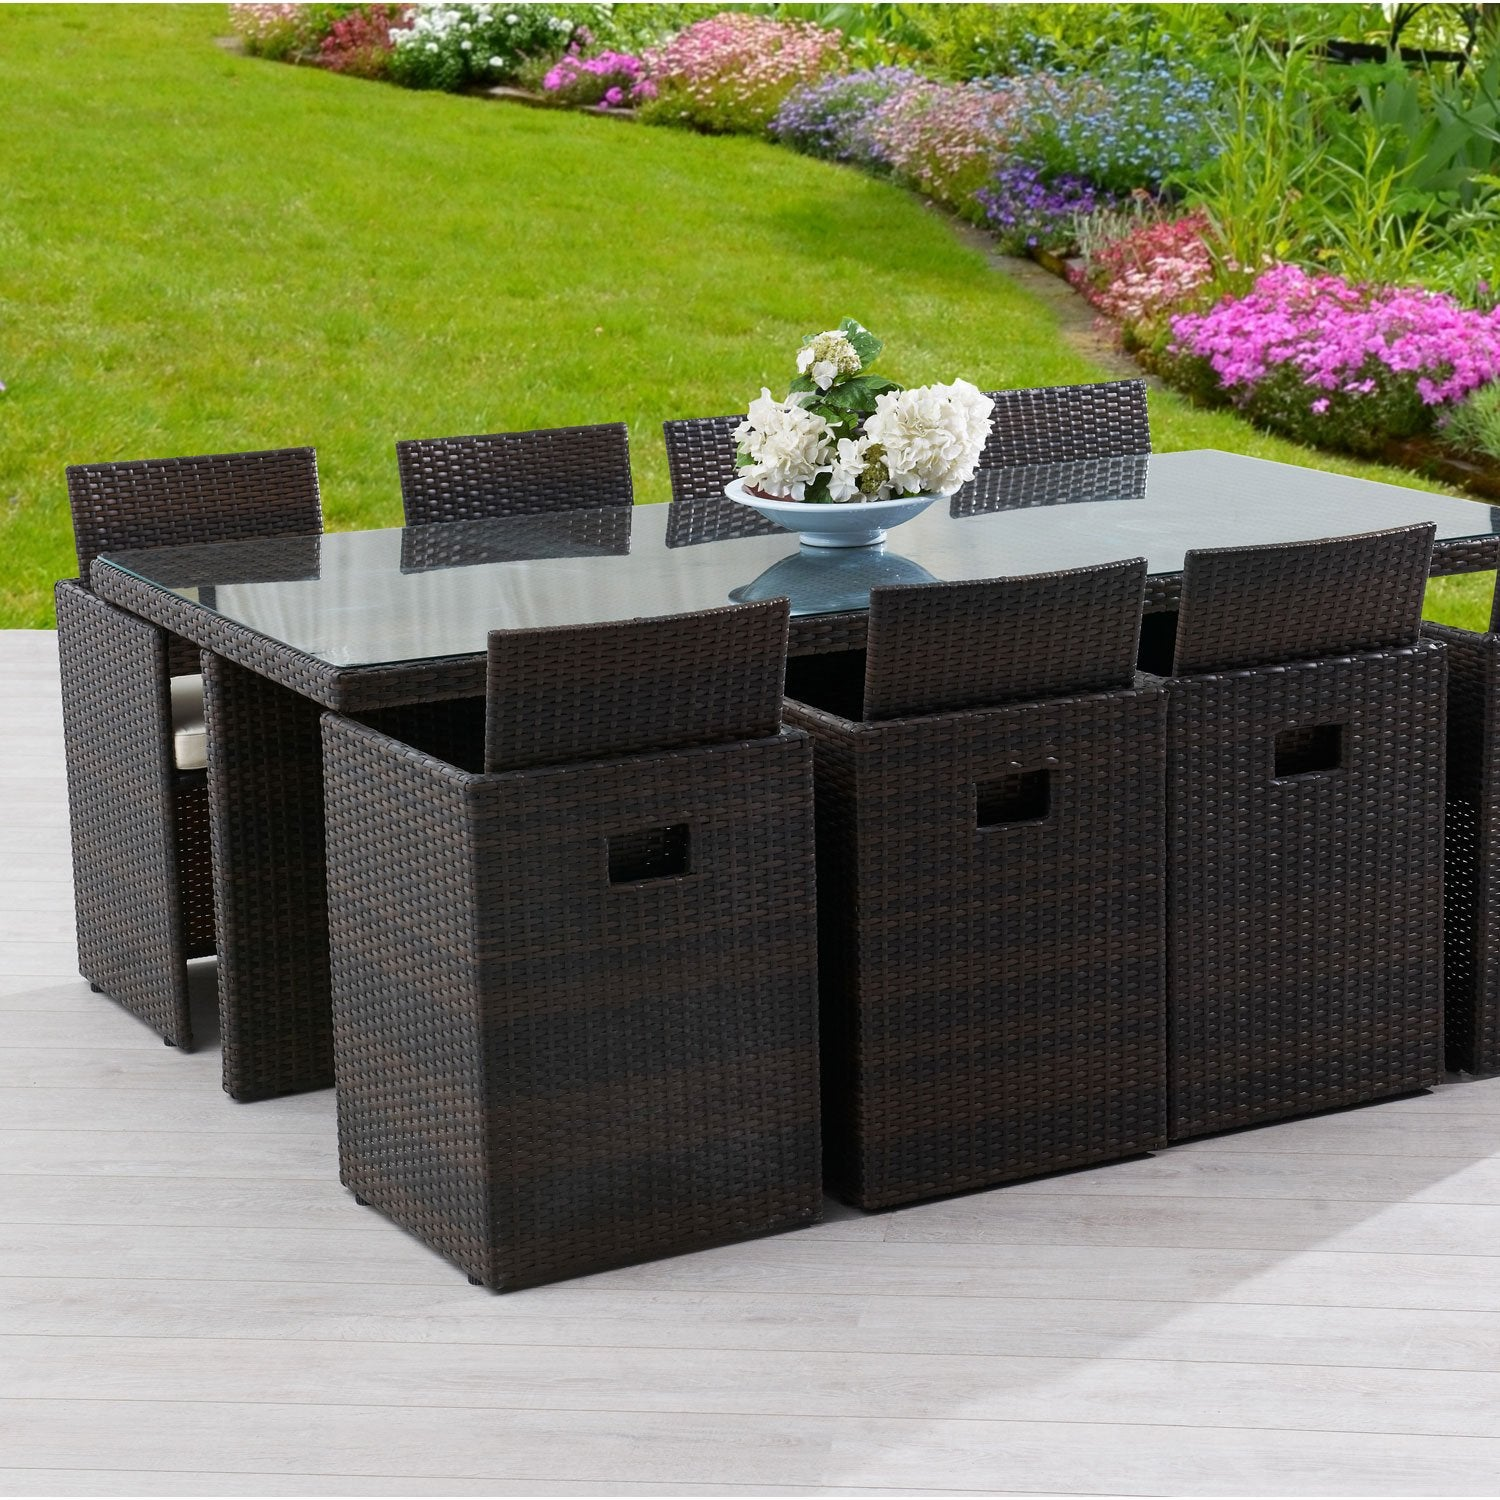 Salon de jardin encastrable r sine tress e marron 1 table - Table de jardin avec chaise ...